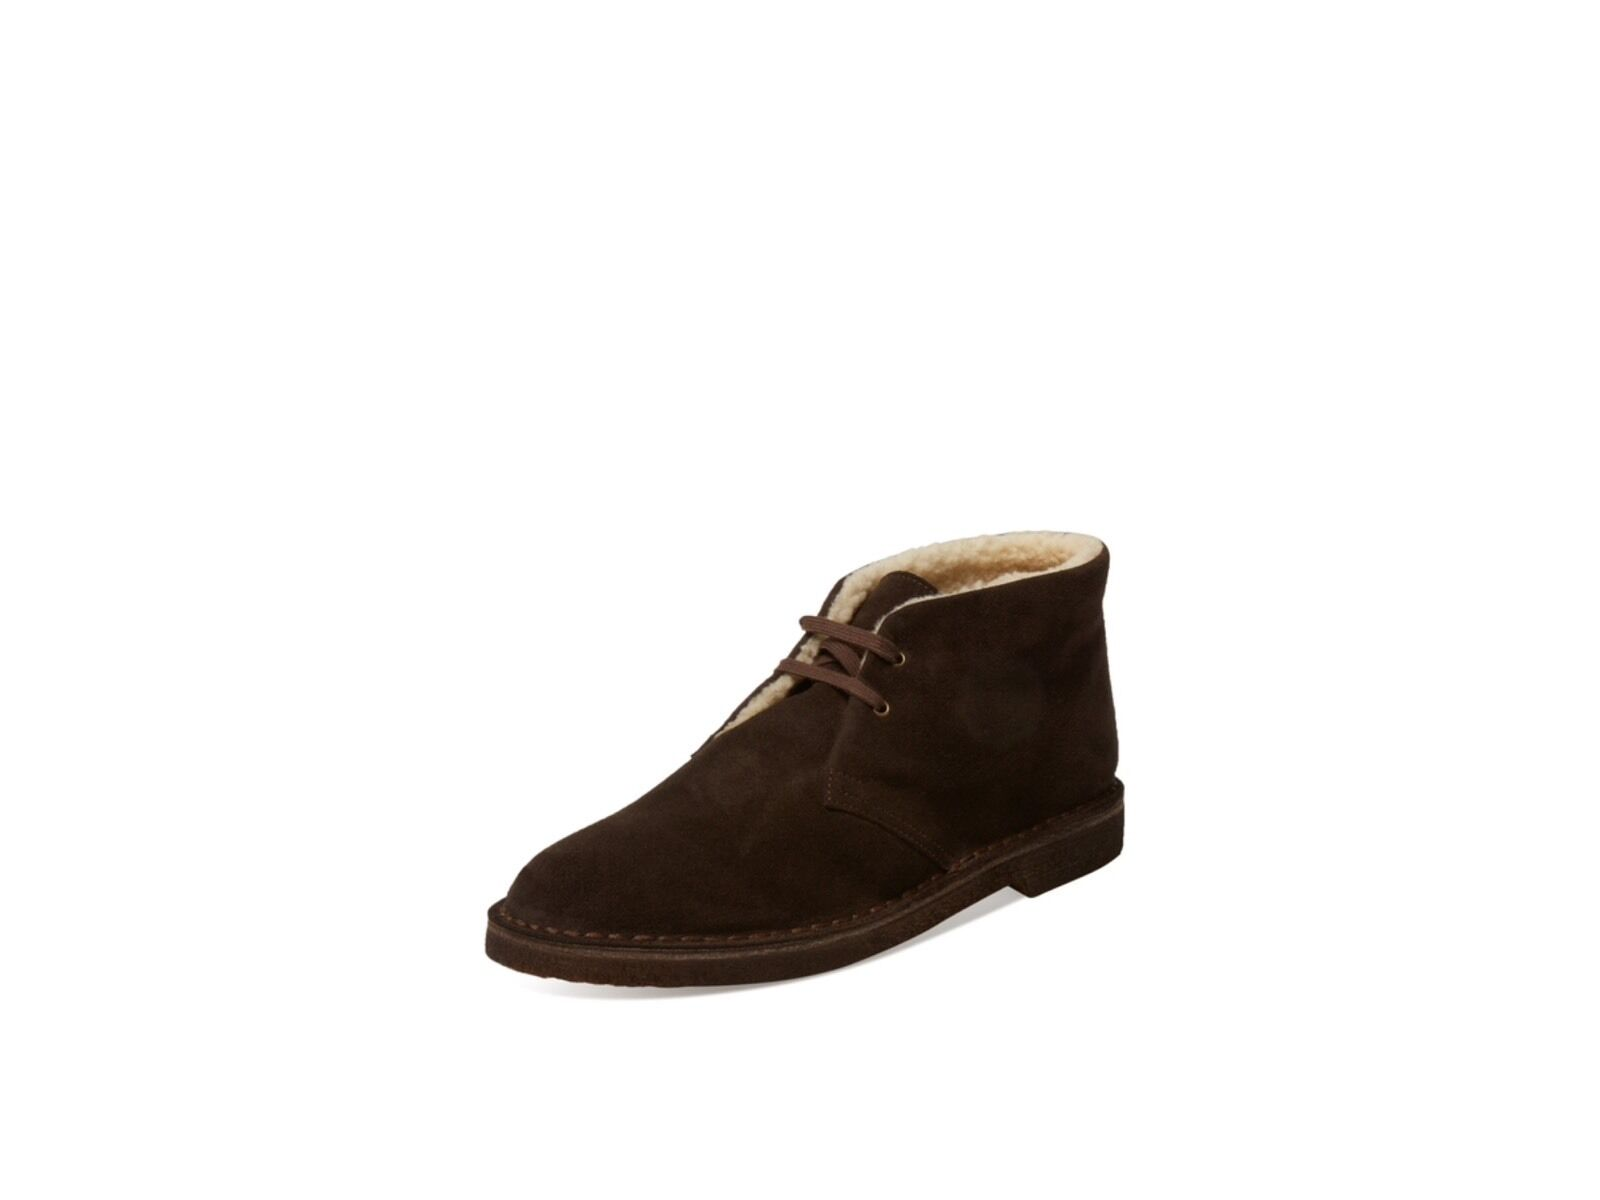 Men's Russell Park Brown Suede Chukka Boots 10